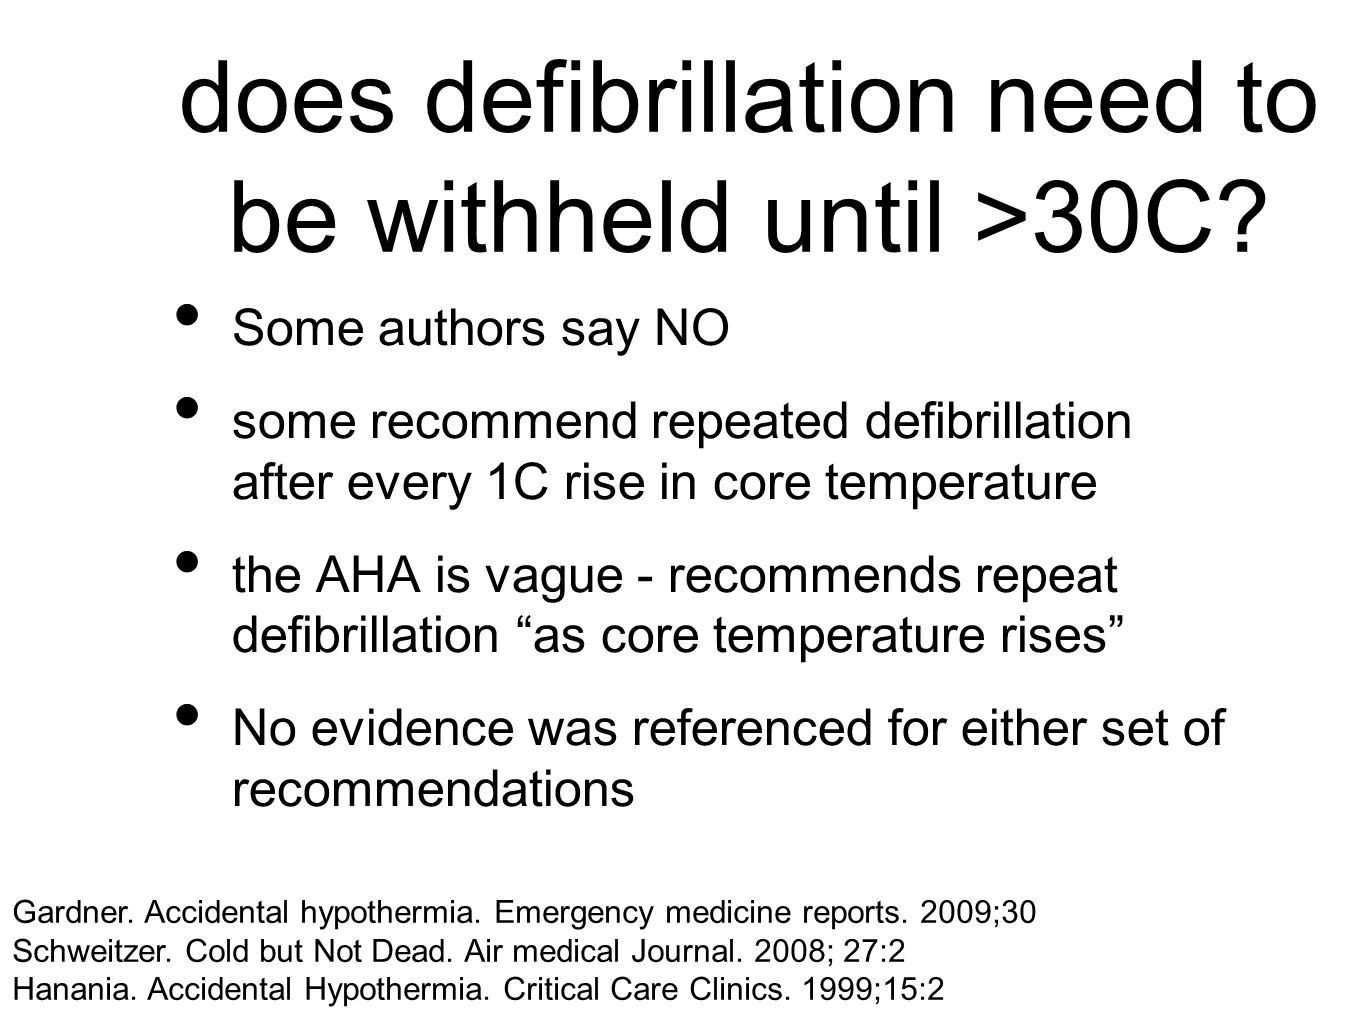 does defibrillation need to be withheld until >30C? Some authors say NO some recommend repeated defibrillation after every 1C rise in core temperature